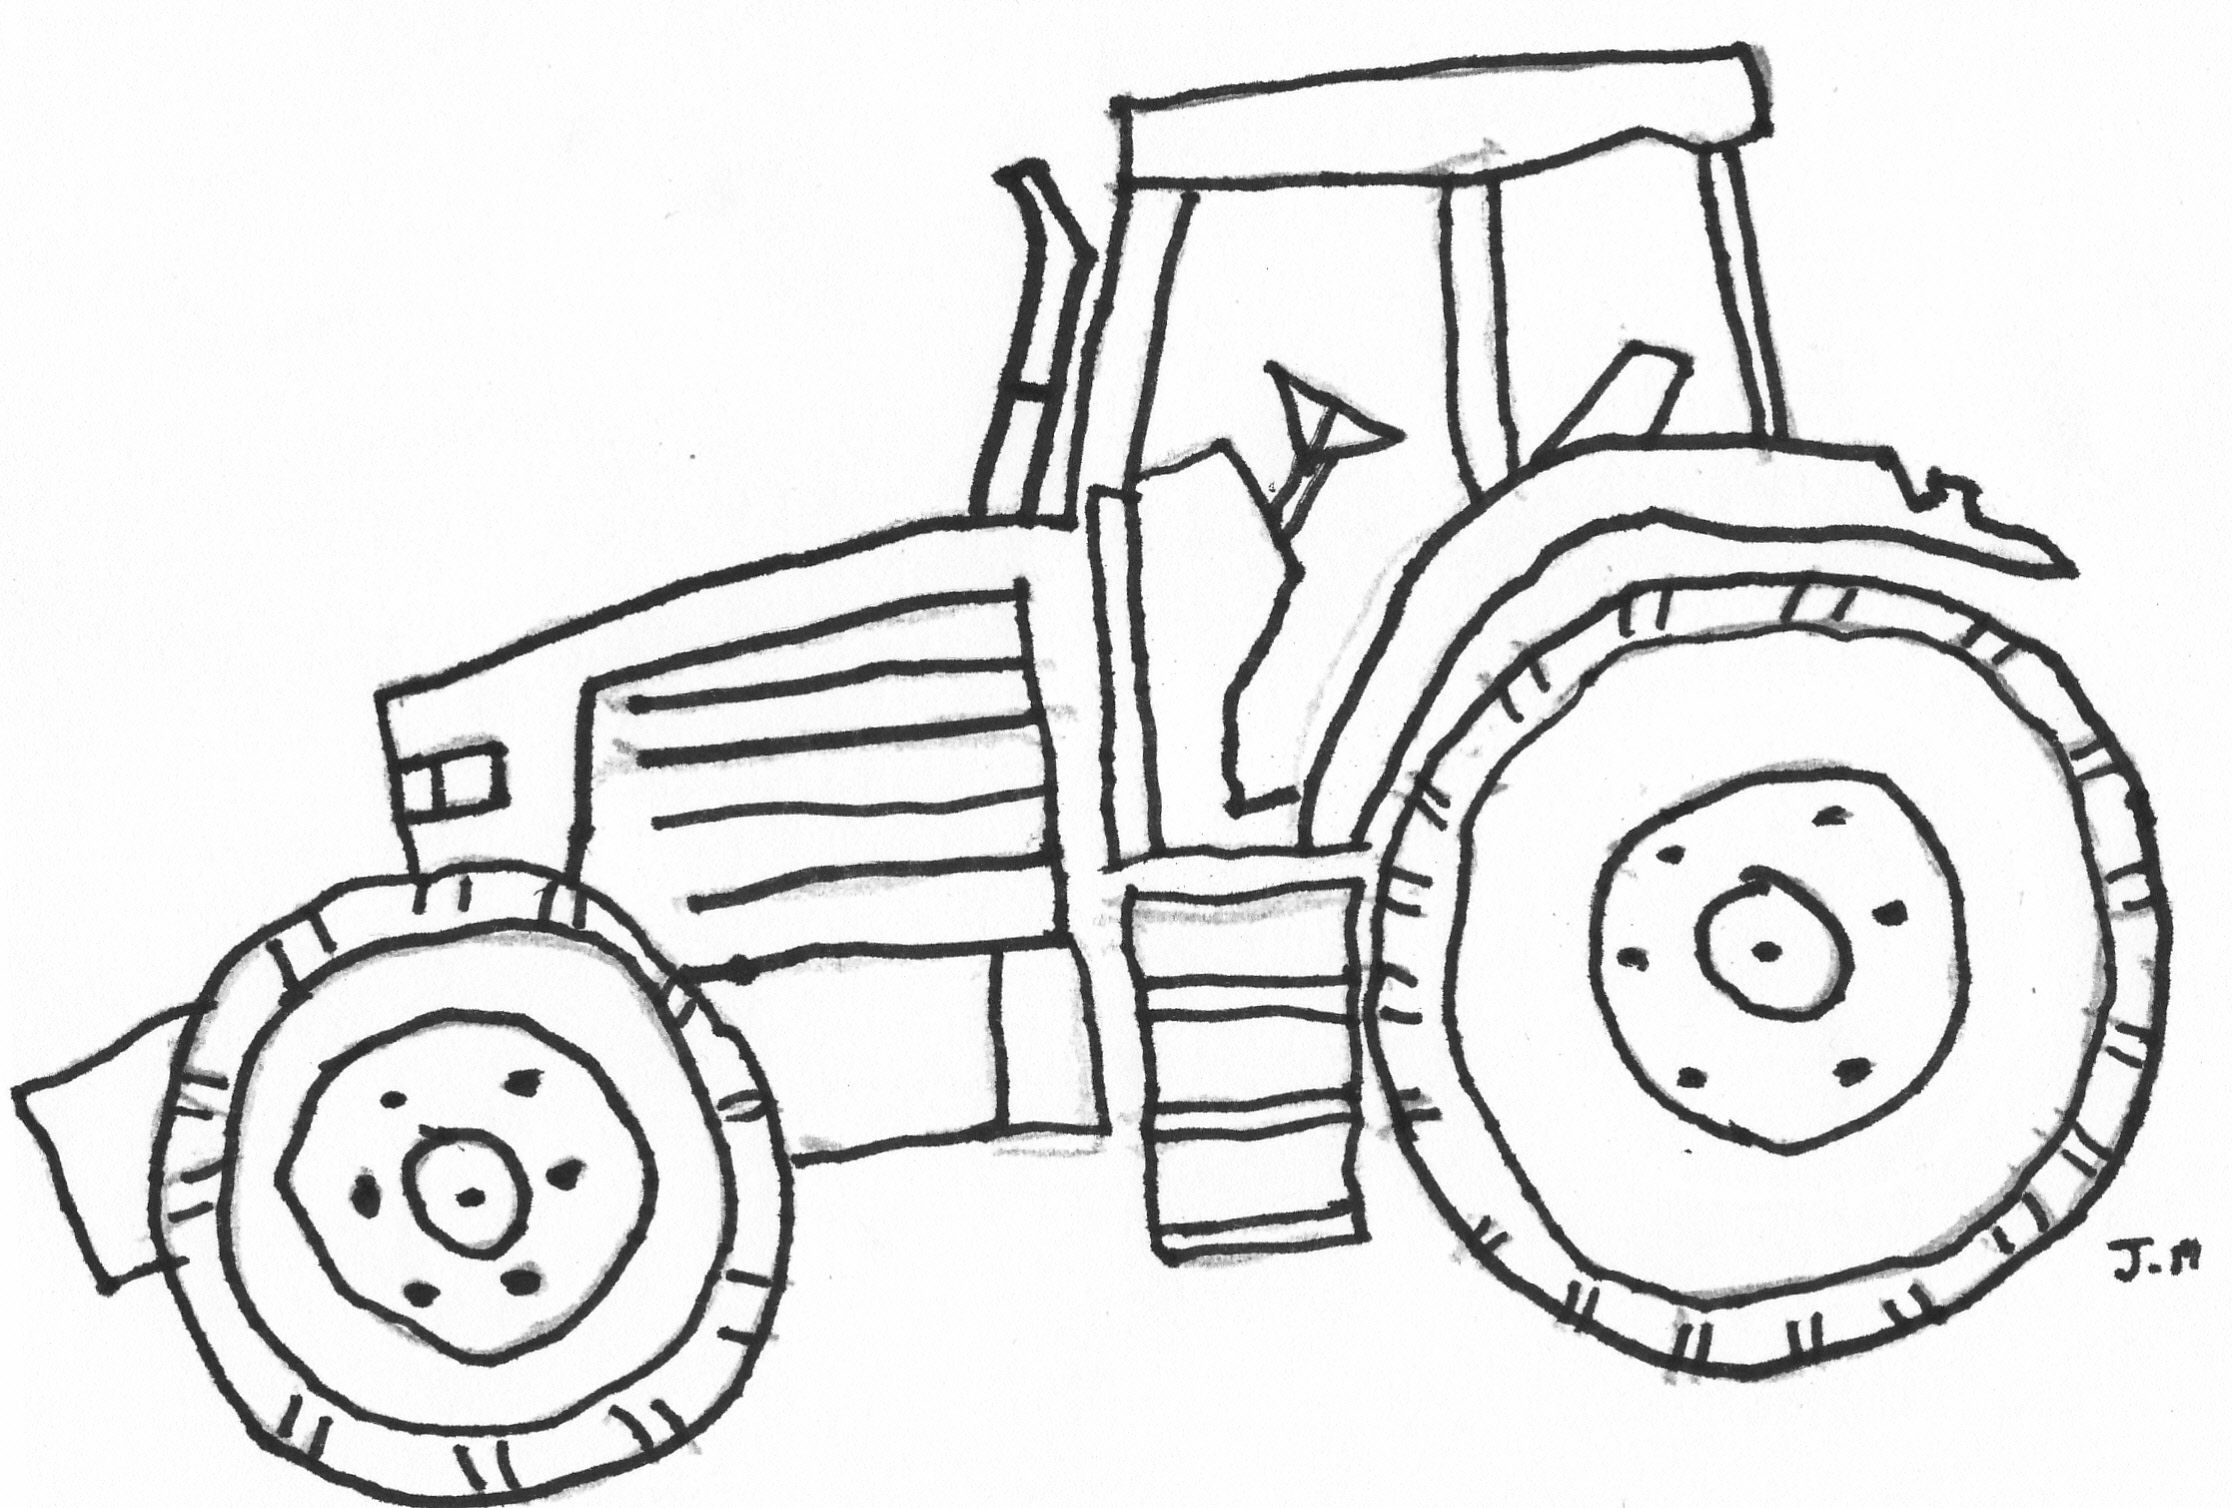 Coloring Pictures John Deere Tractors - Easy john deere tractor drawing coloring pages of john deere tractors